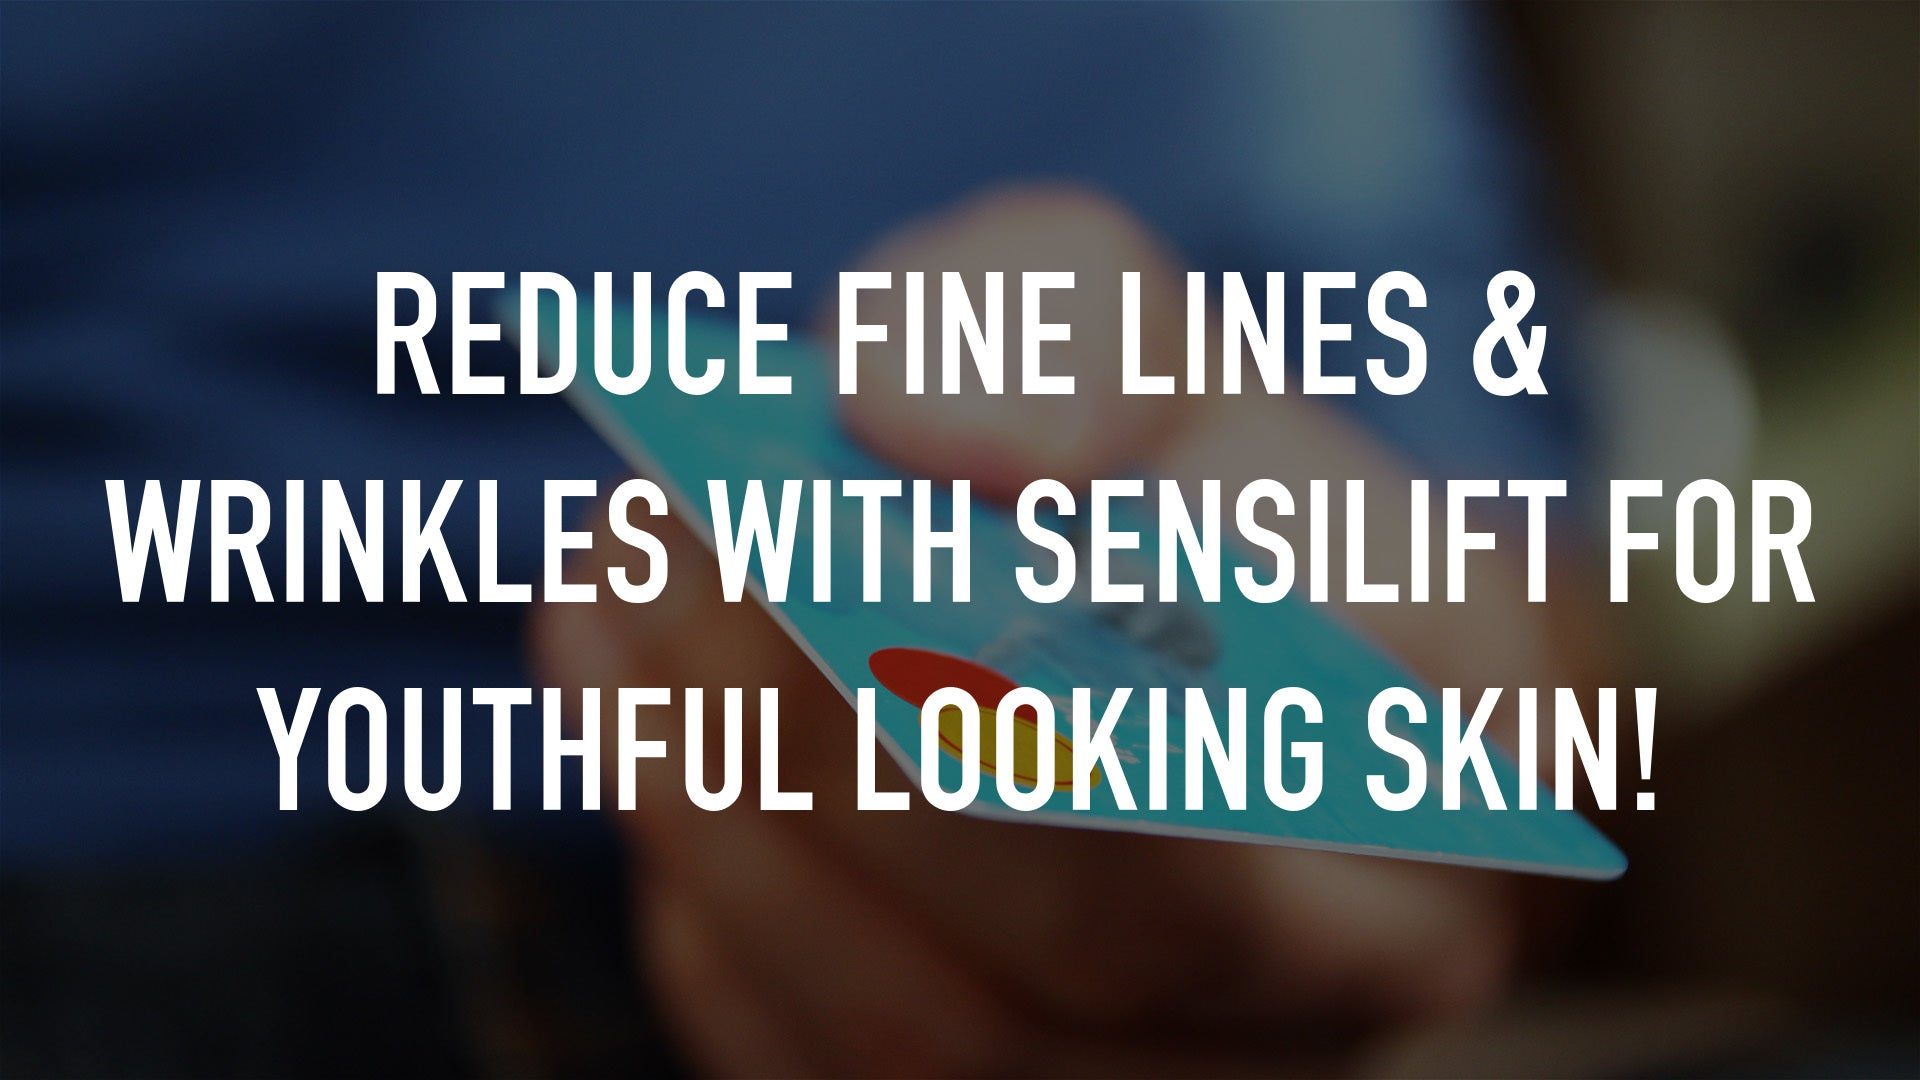 Reduce fine lines & wrinkles with Sensilift for youthful looking skin!